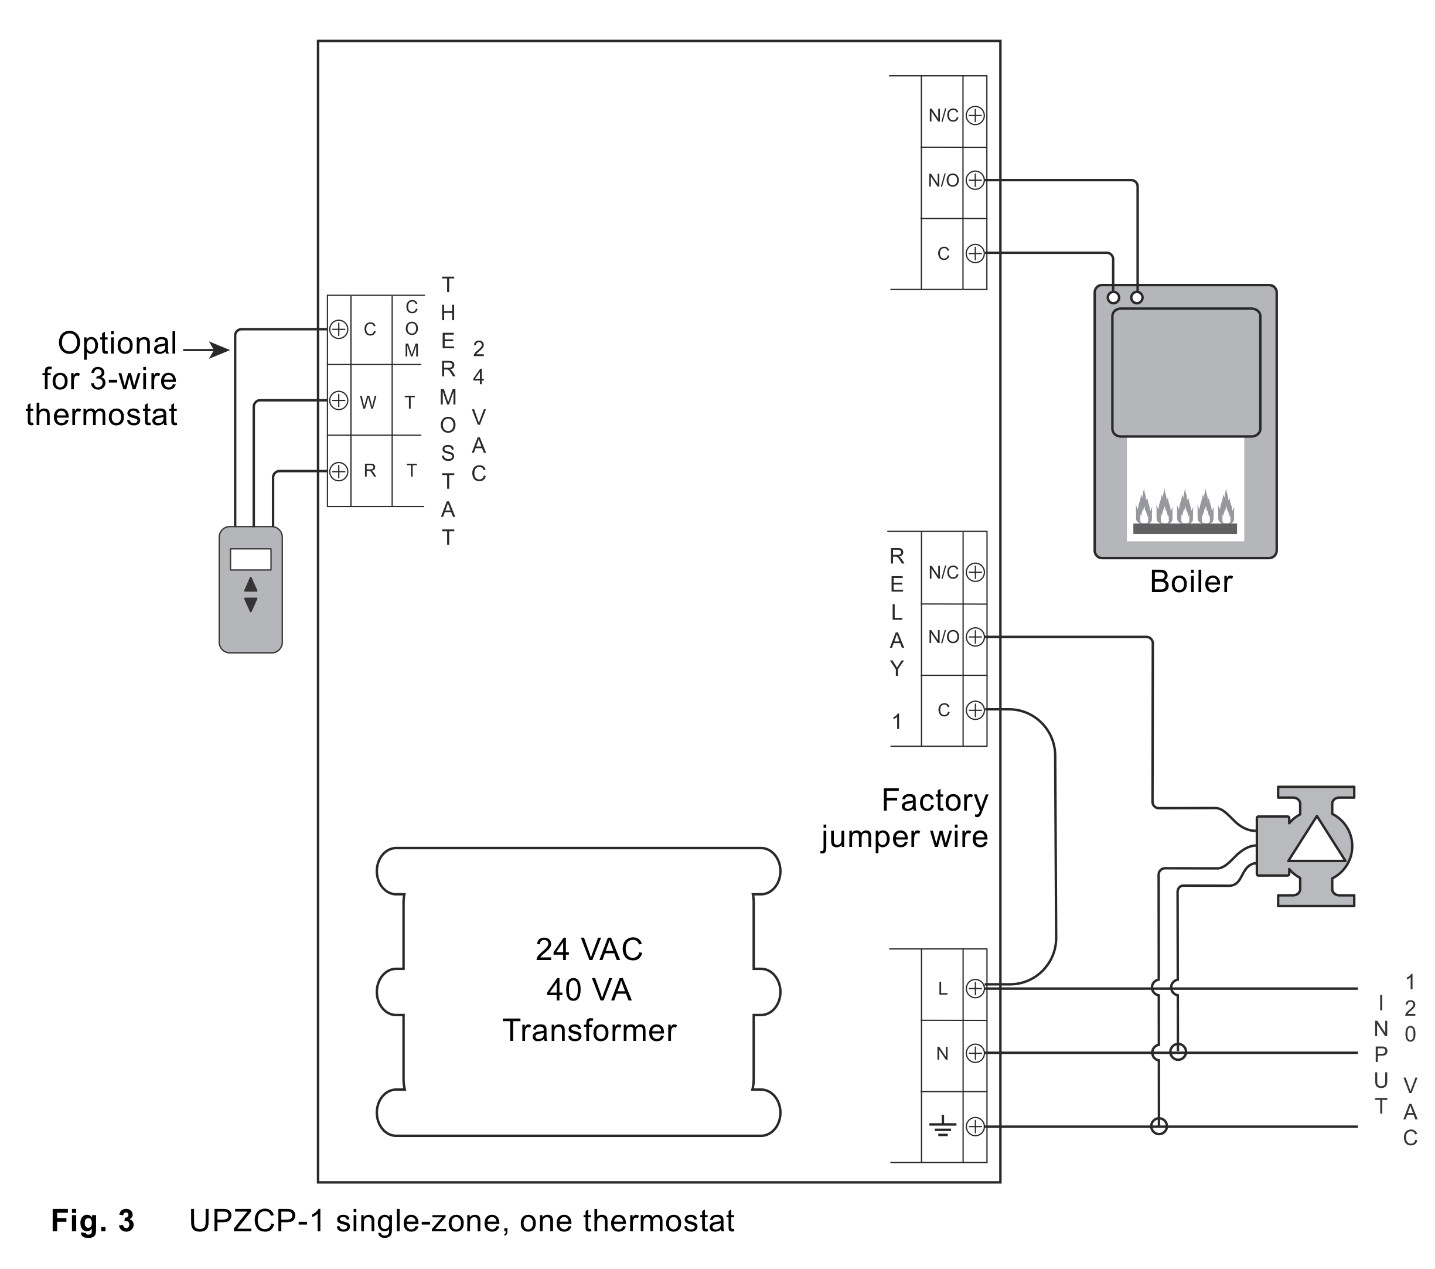 wb21x5243 wiring diagram Download-Wb21x5243 Wiring Diagram Taco 006 B4 Wiring Diagram Download Taco 007 F5 Wiring Diagram Gallery 7-p